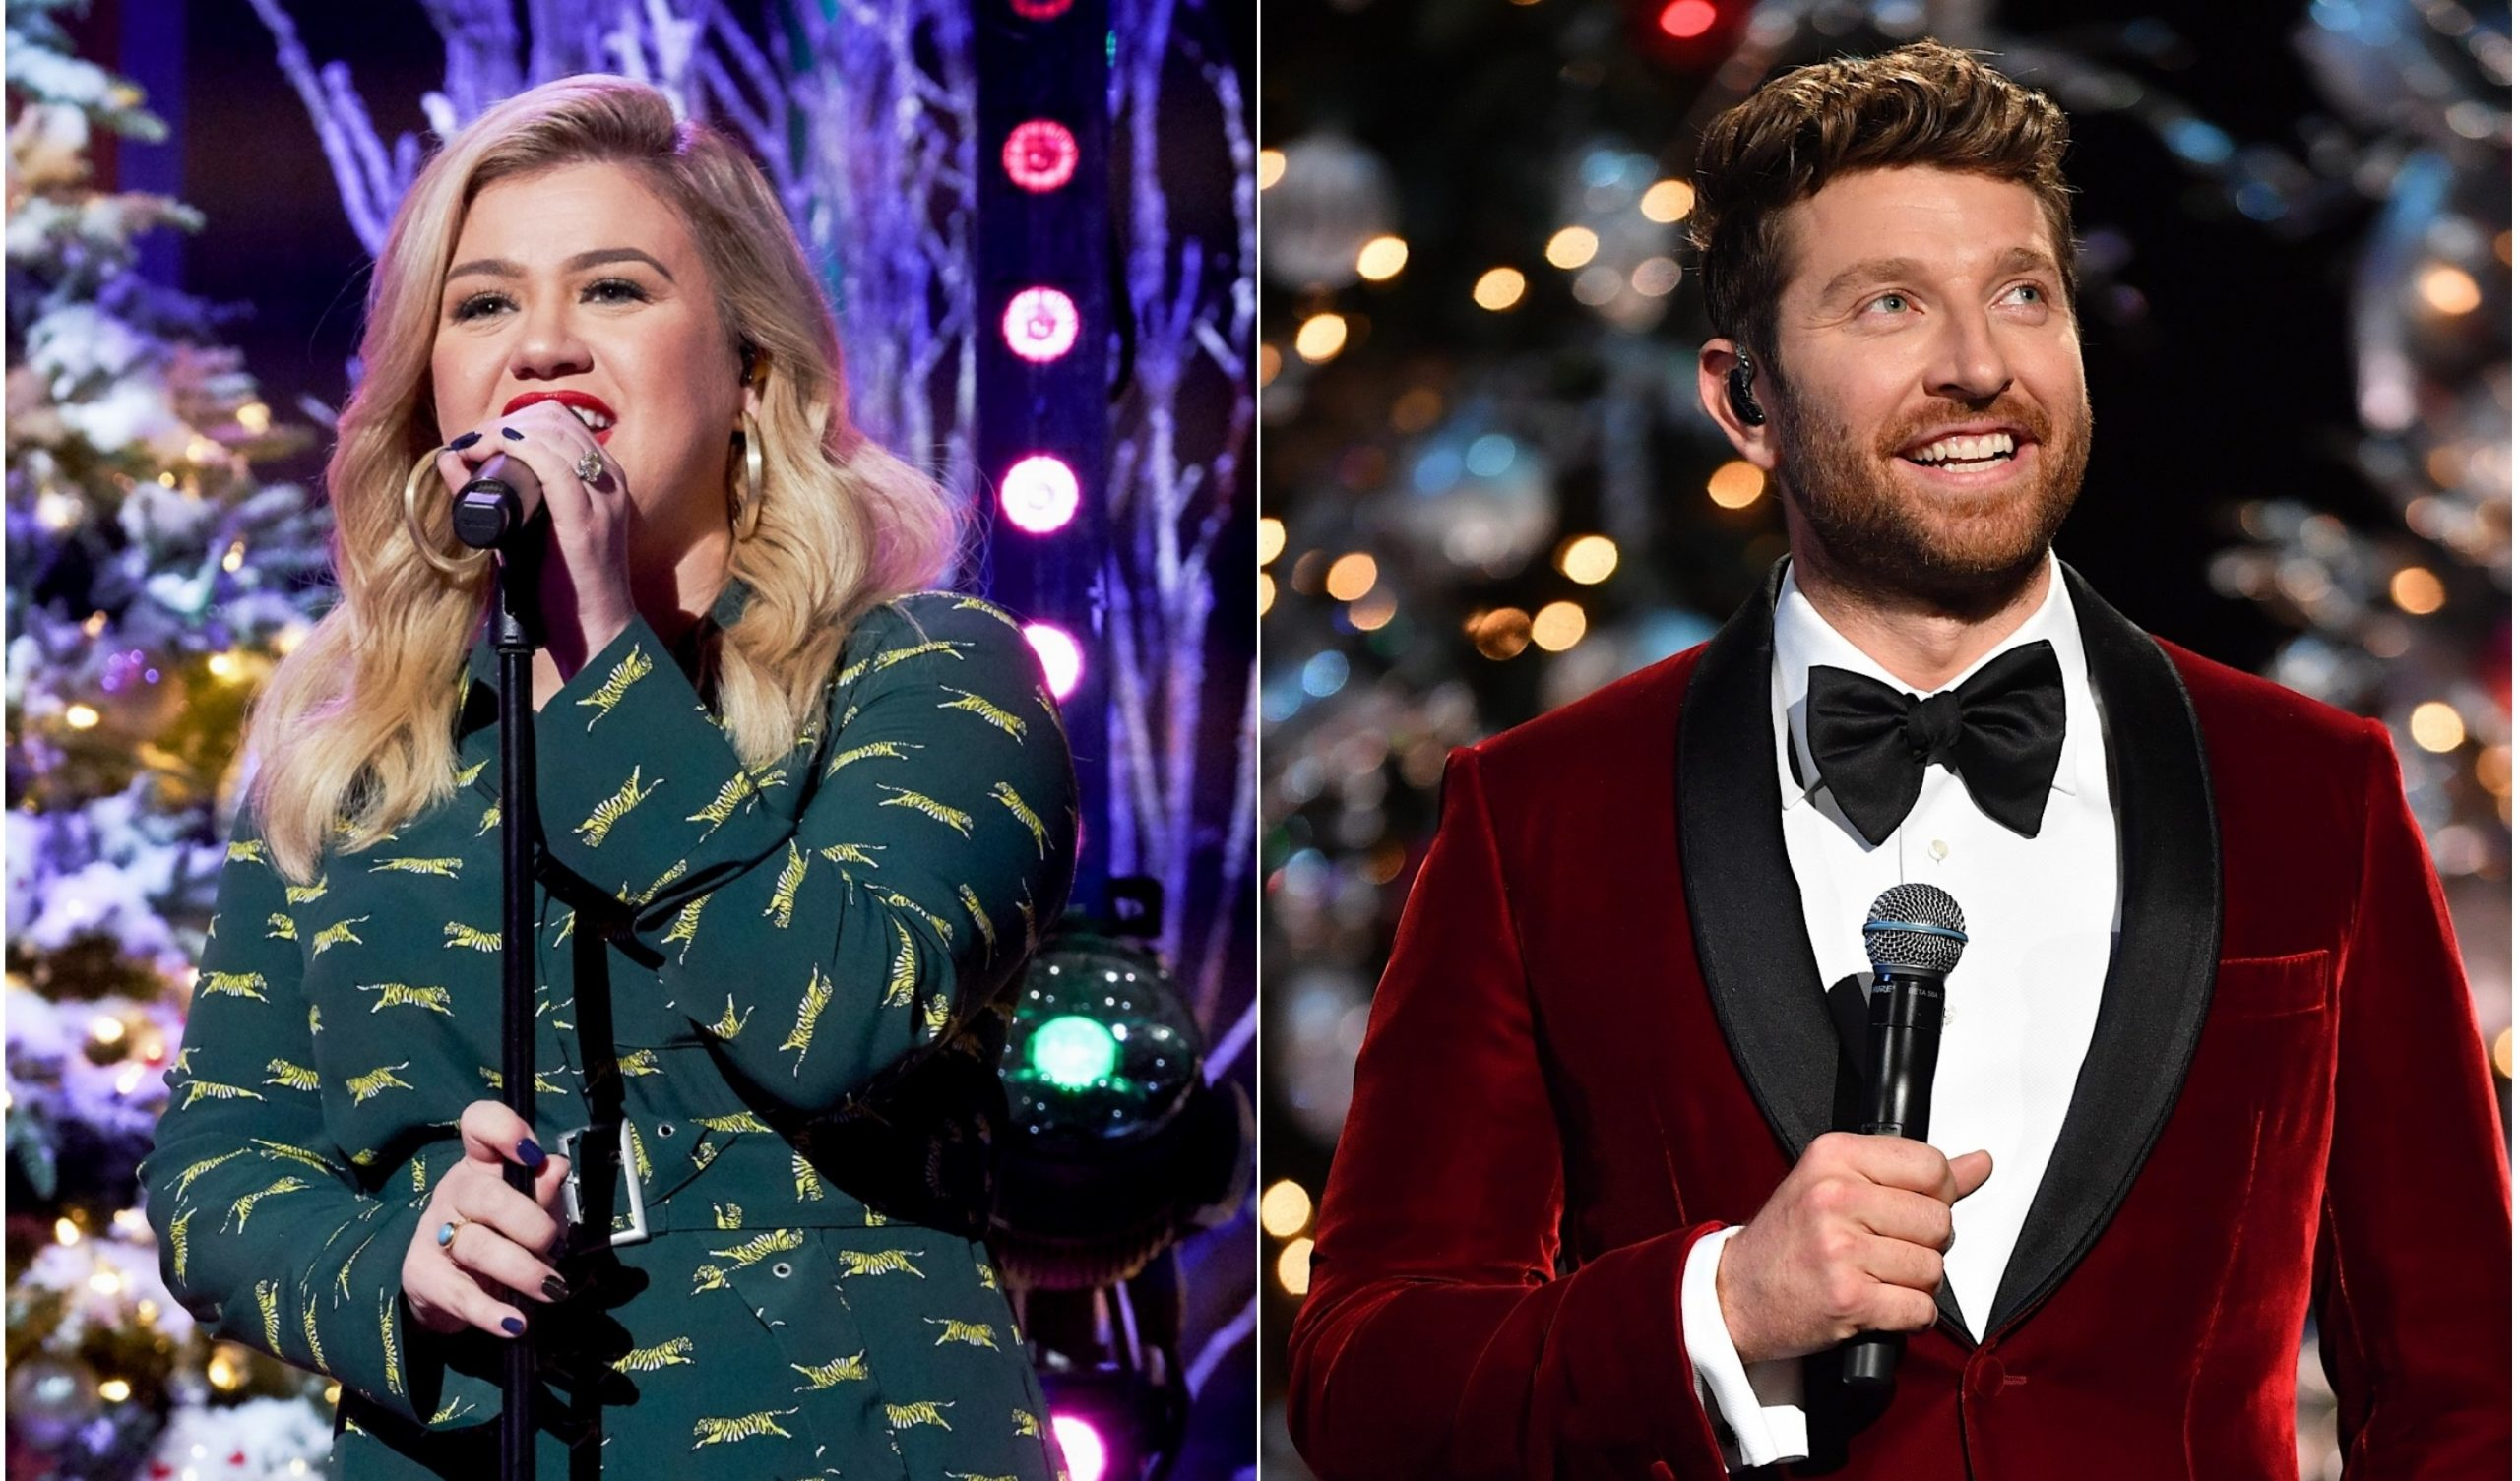 Kelly Clarkson Christmas 2020 Kelly Clarkson To Release Christmas Song With Brett Eldredge